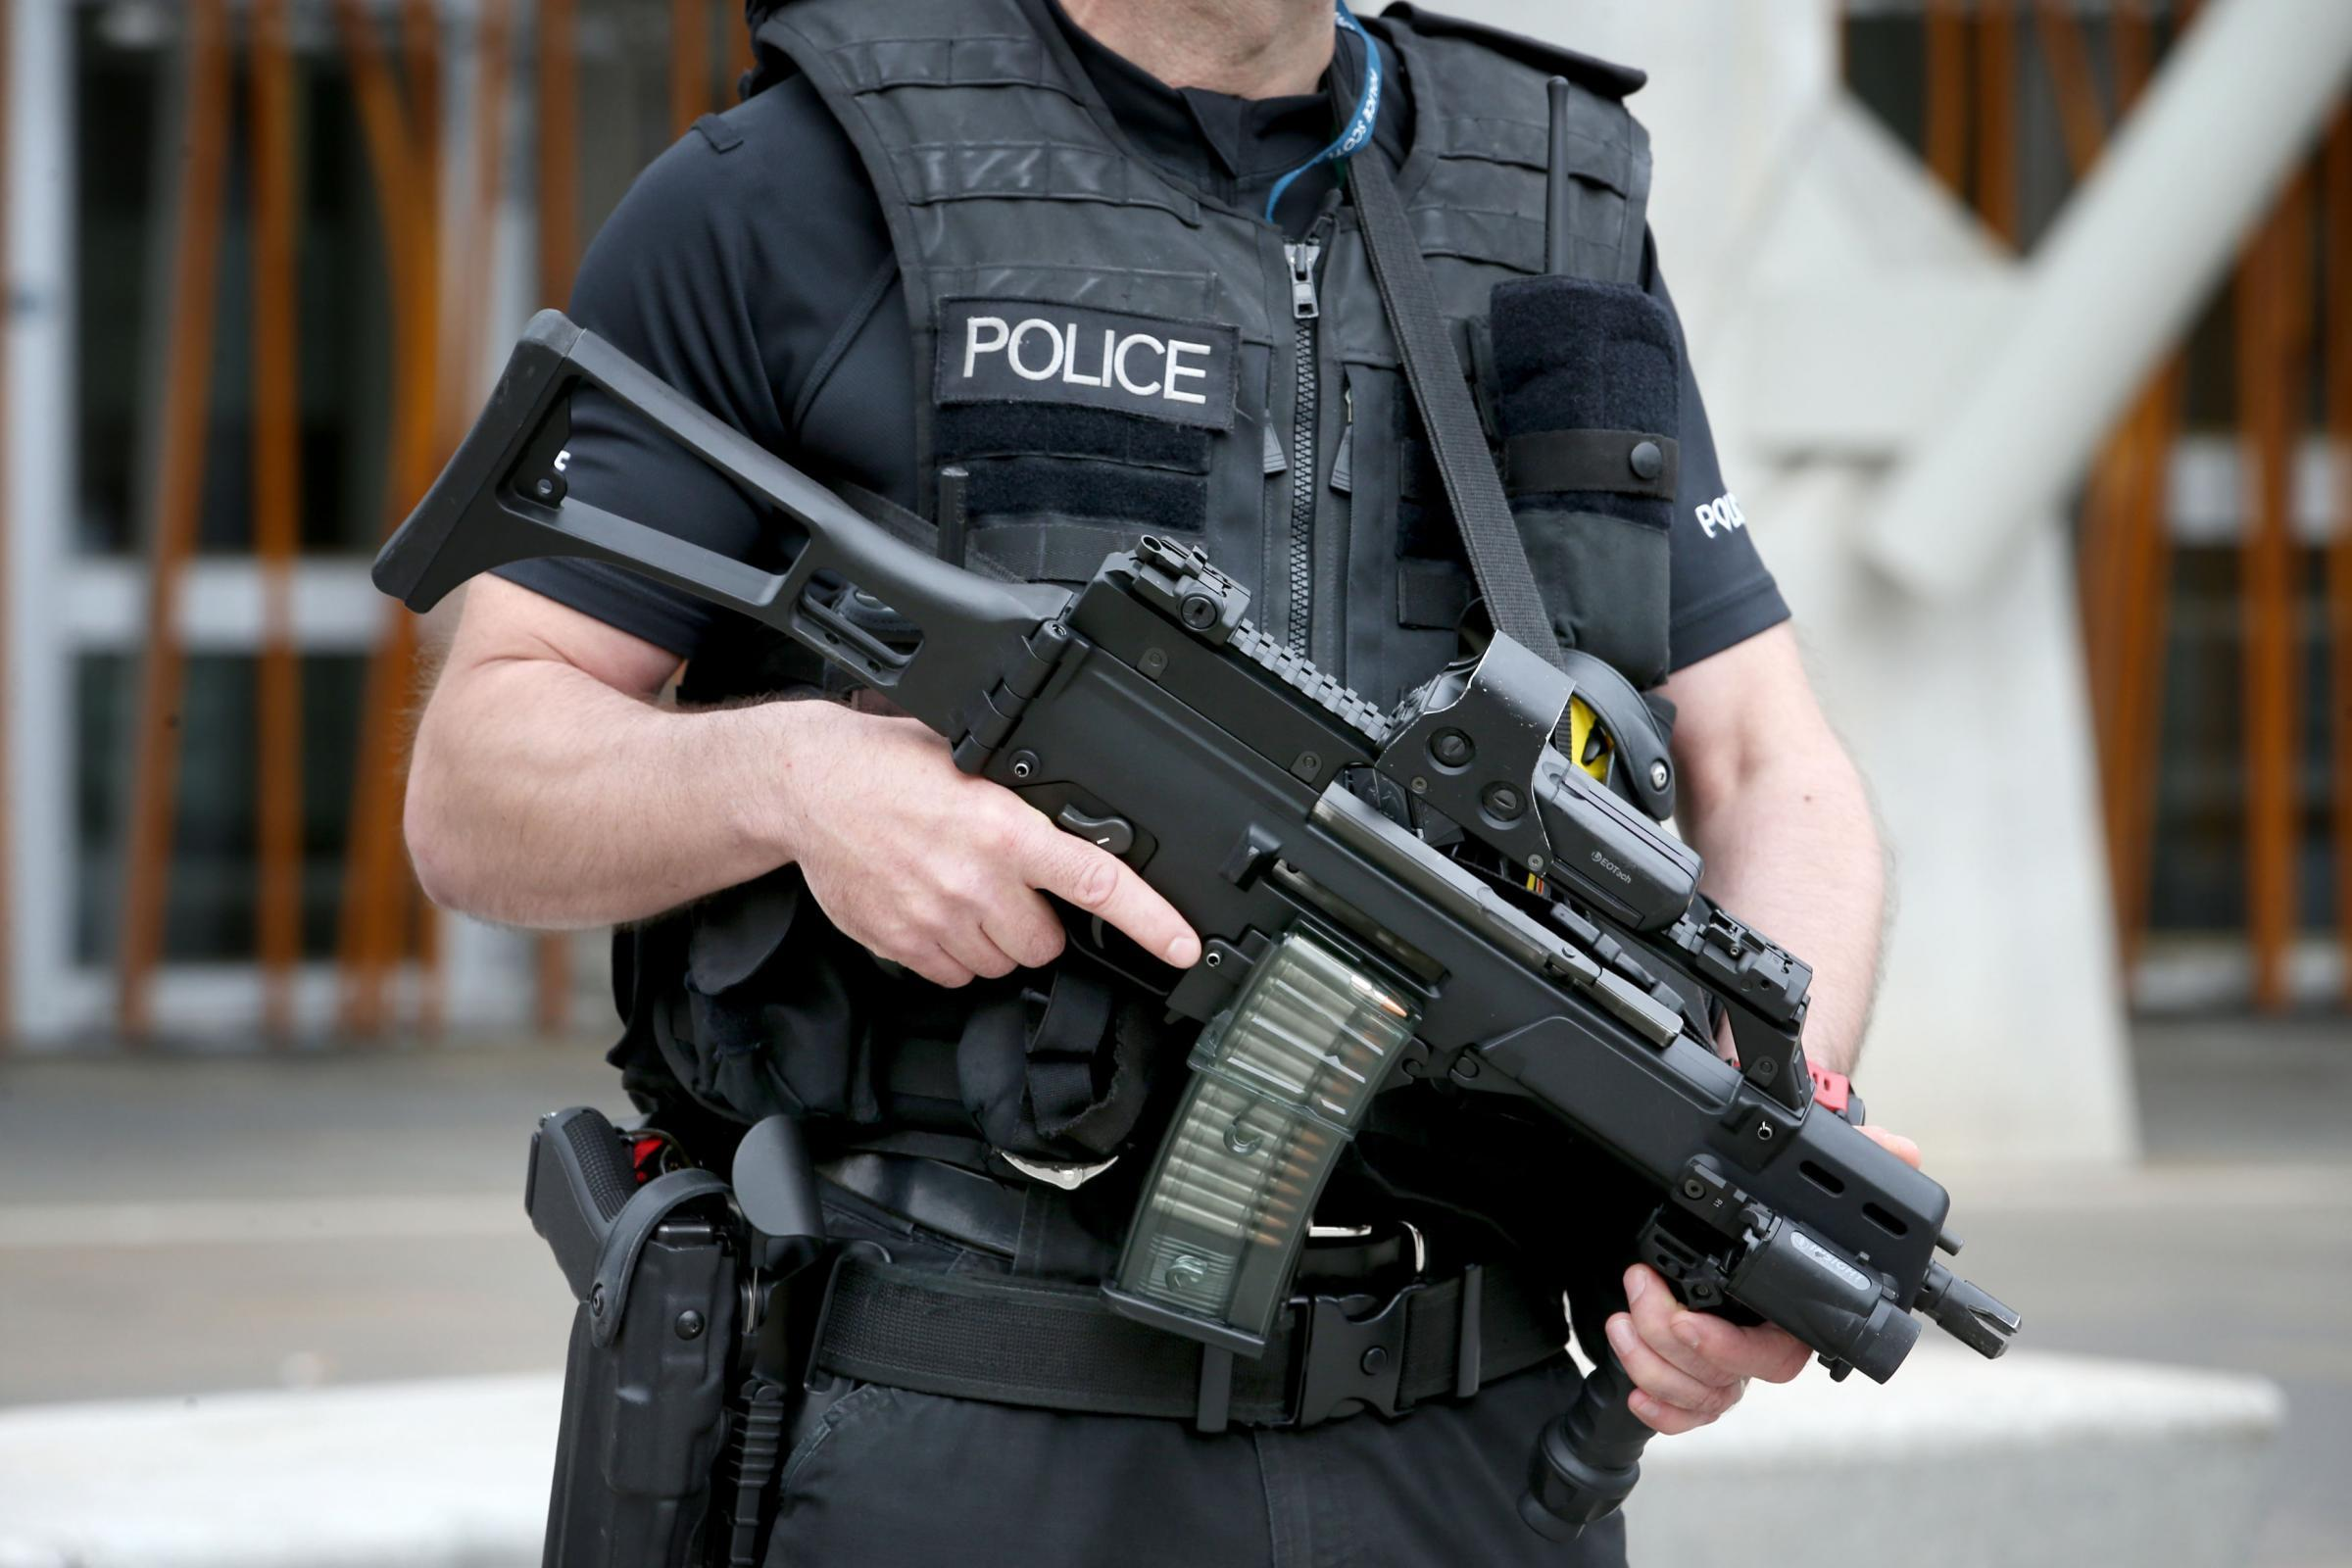 A 21-year-old man was arrested in Woolwich during an armed police counter-terror operation